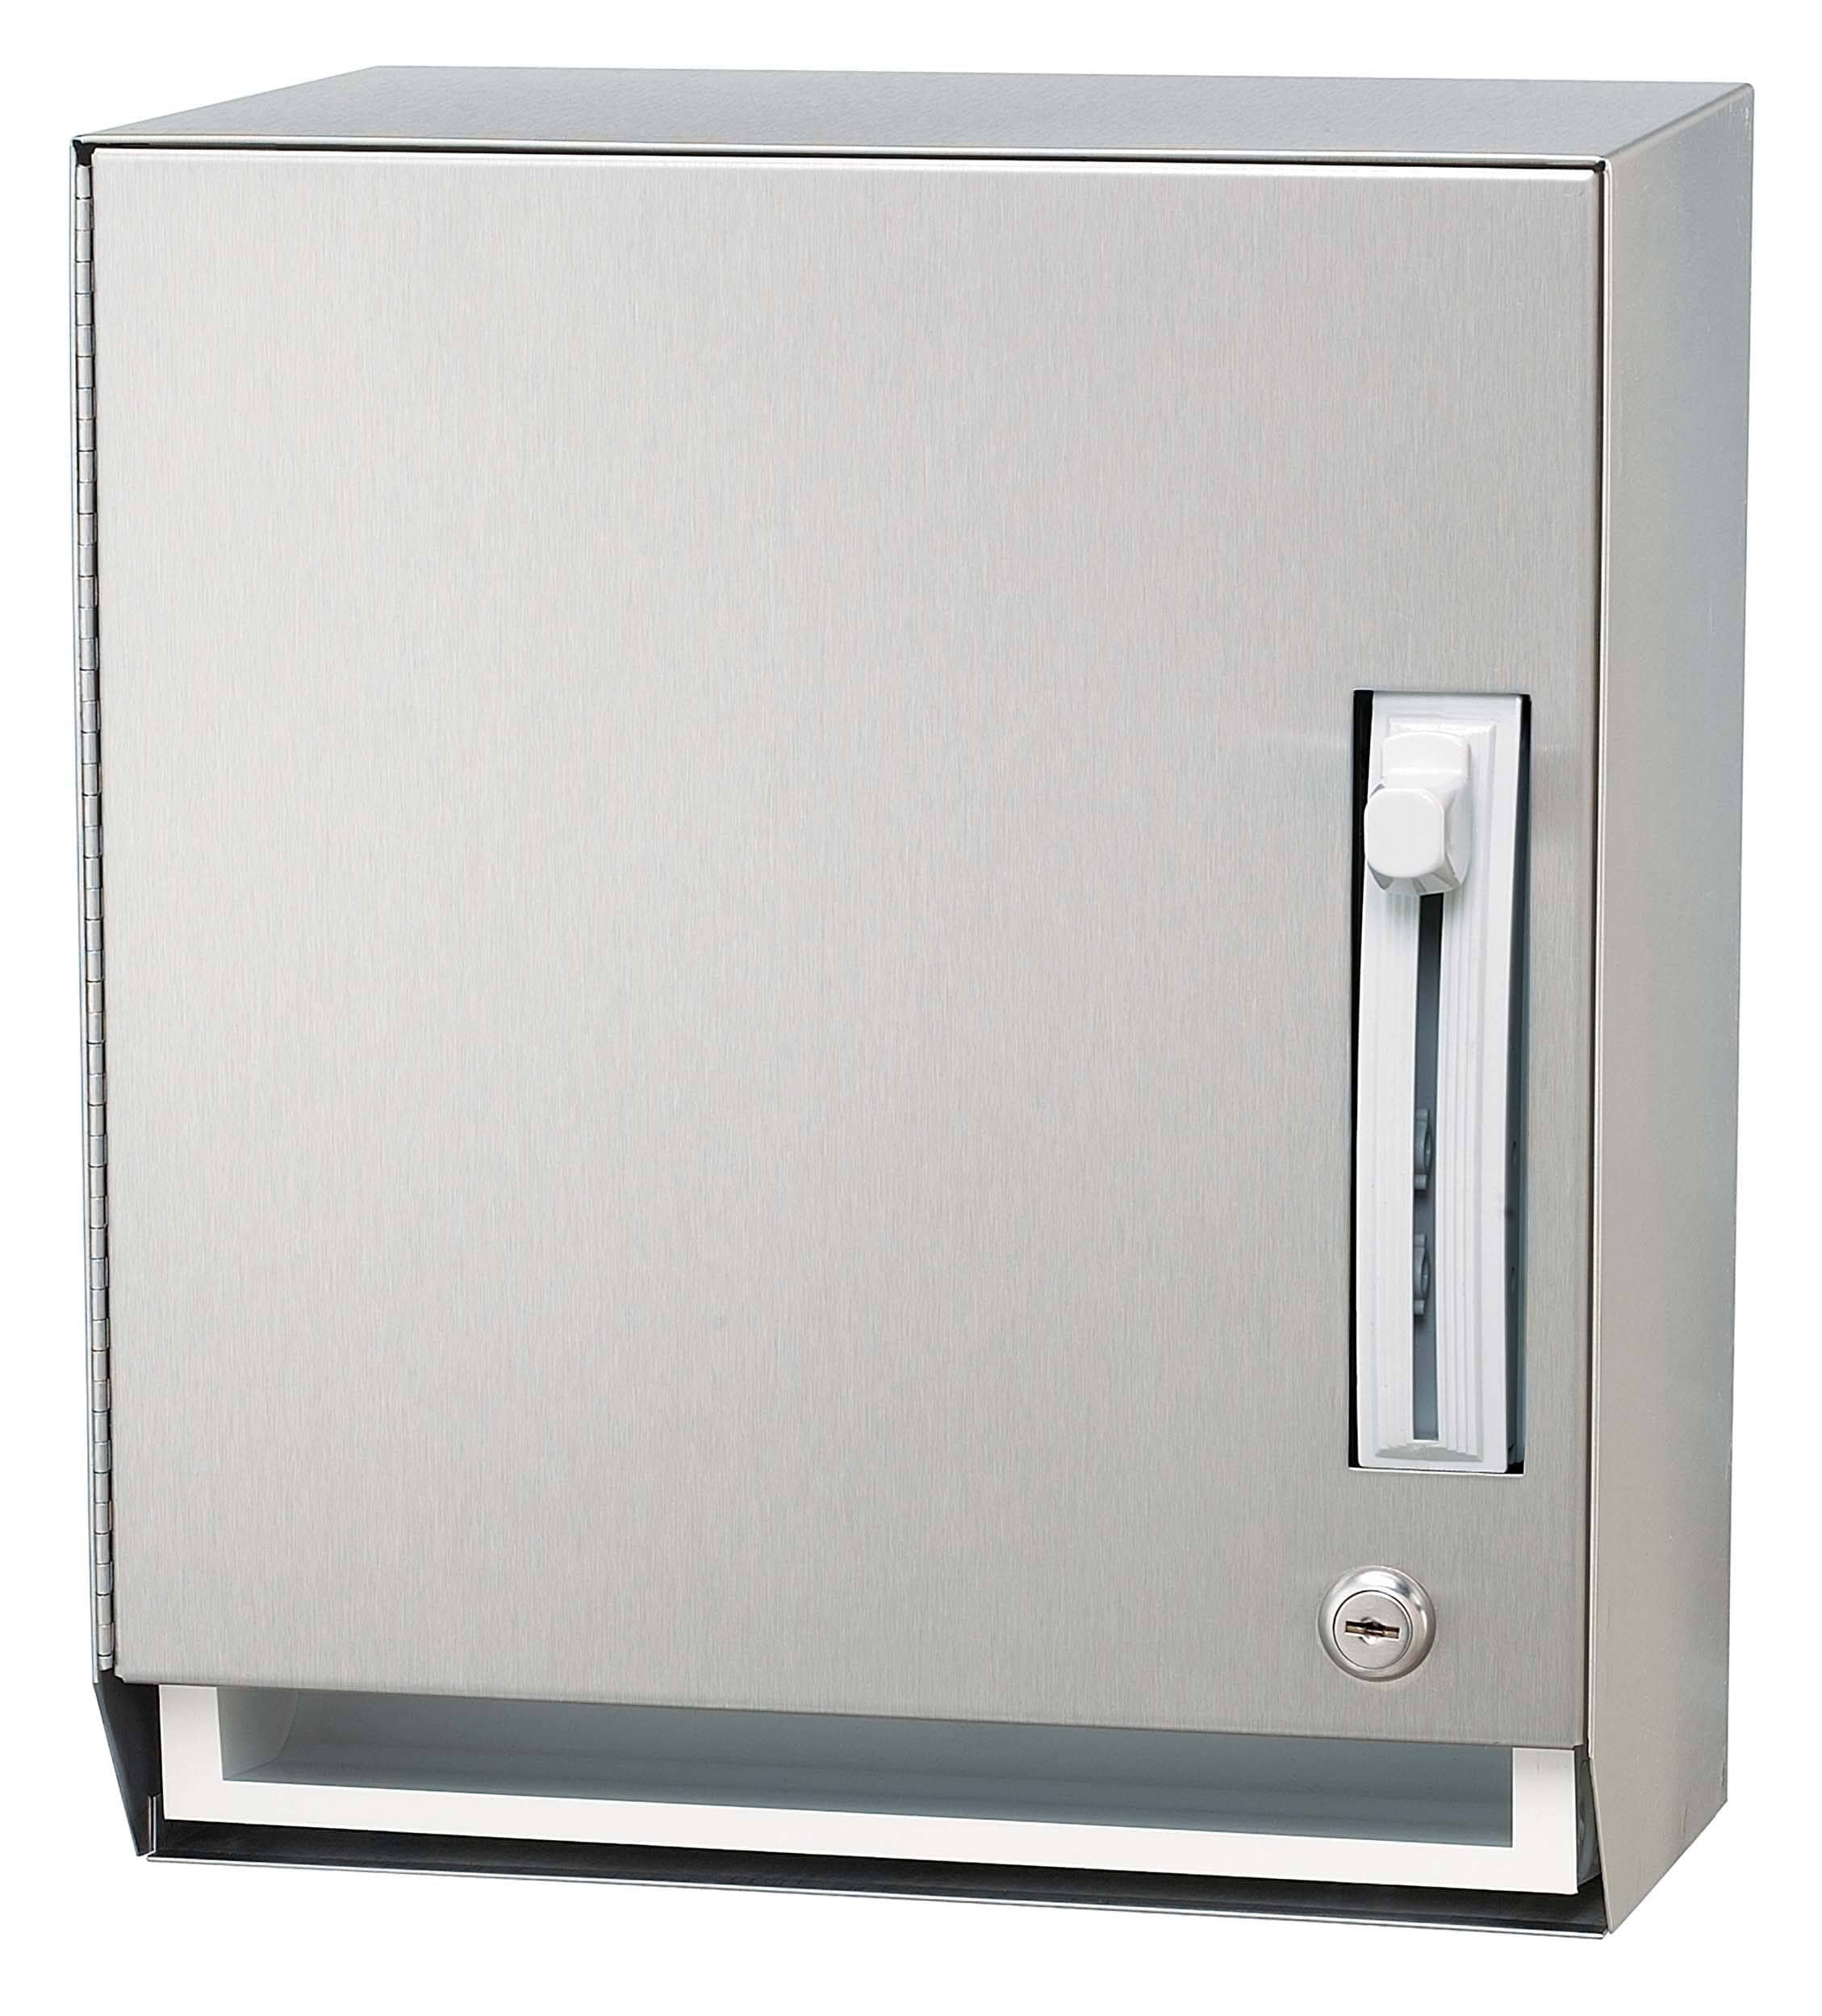 Bradley 2483-00 Commercial BX-Paper Towel Dispenser, Surface-Mounted, Stainless Steel - TotalRestroom.com